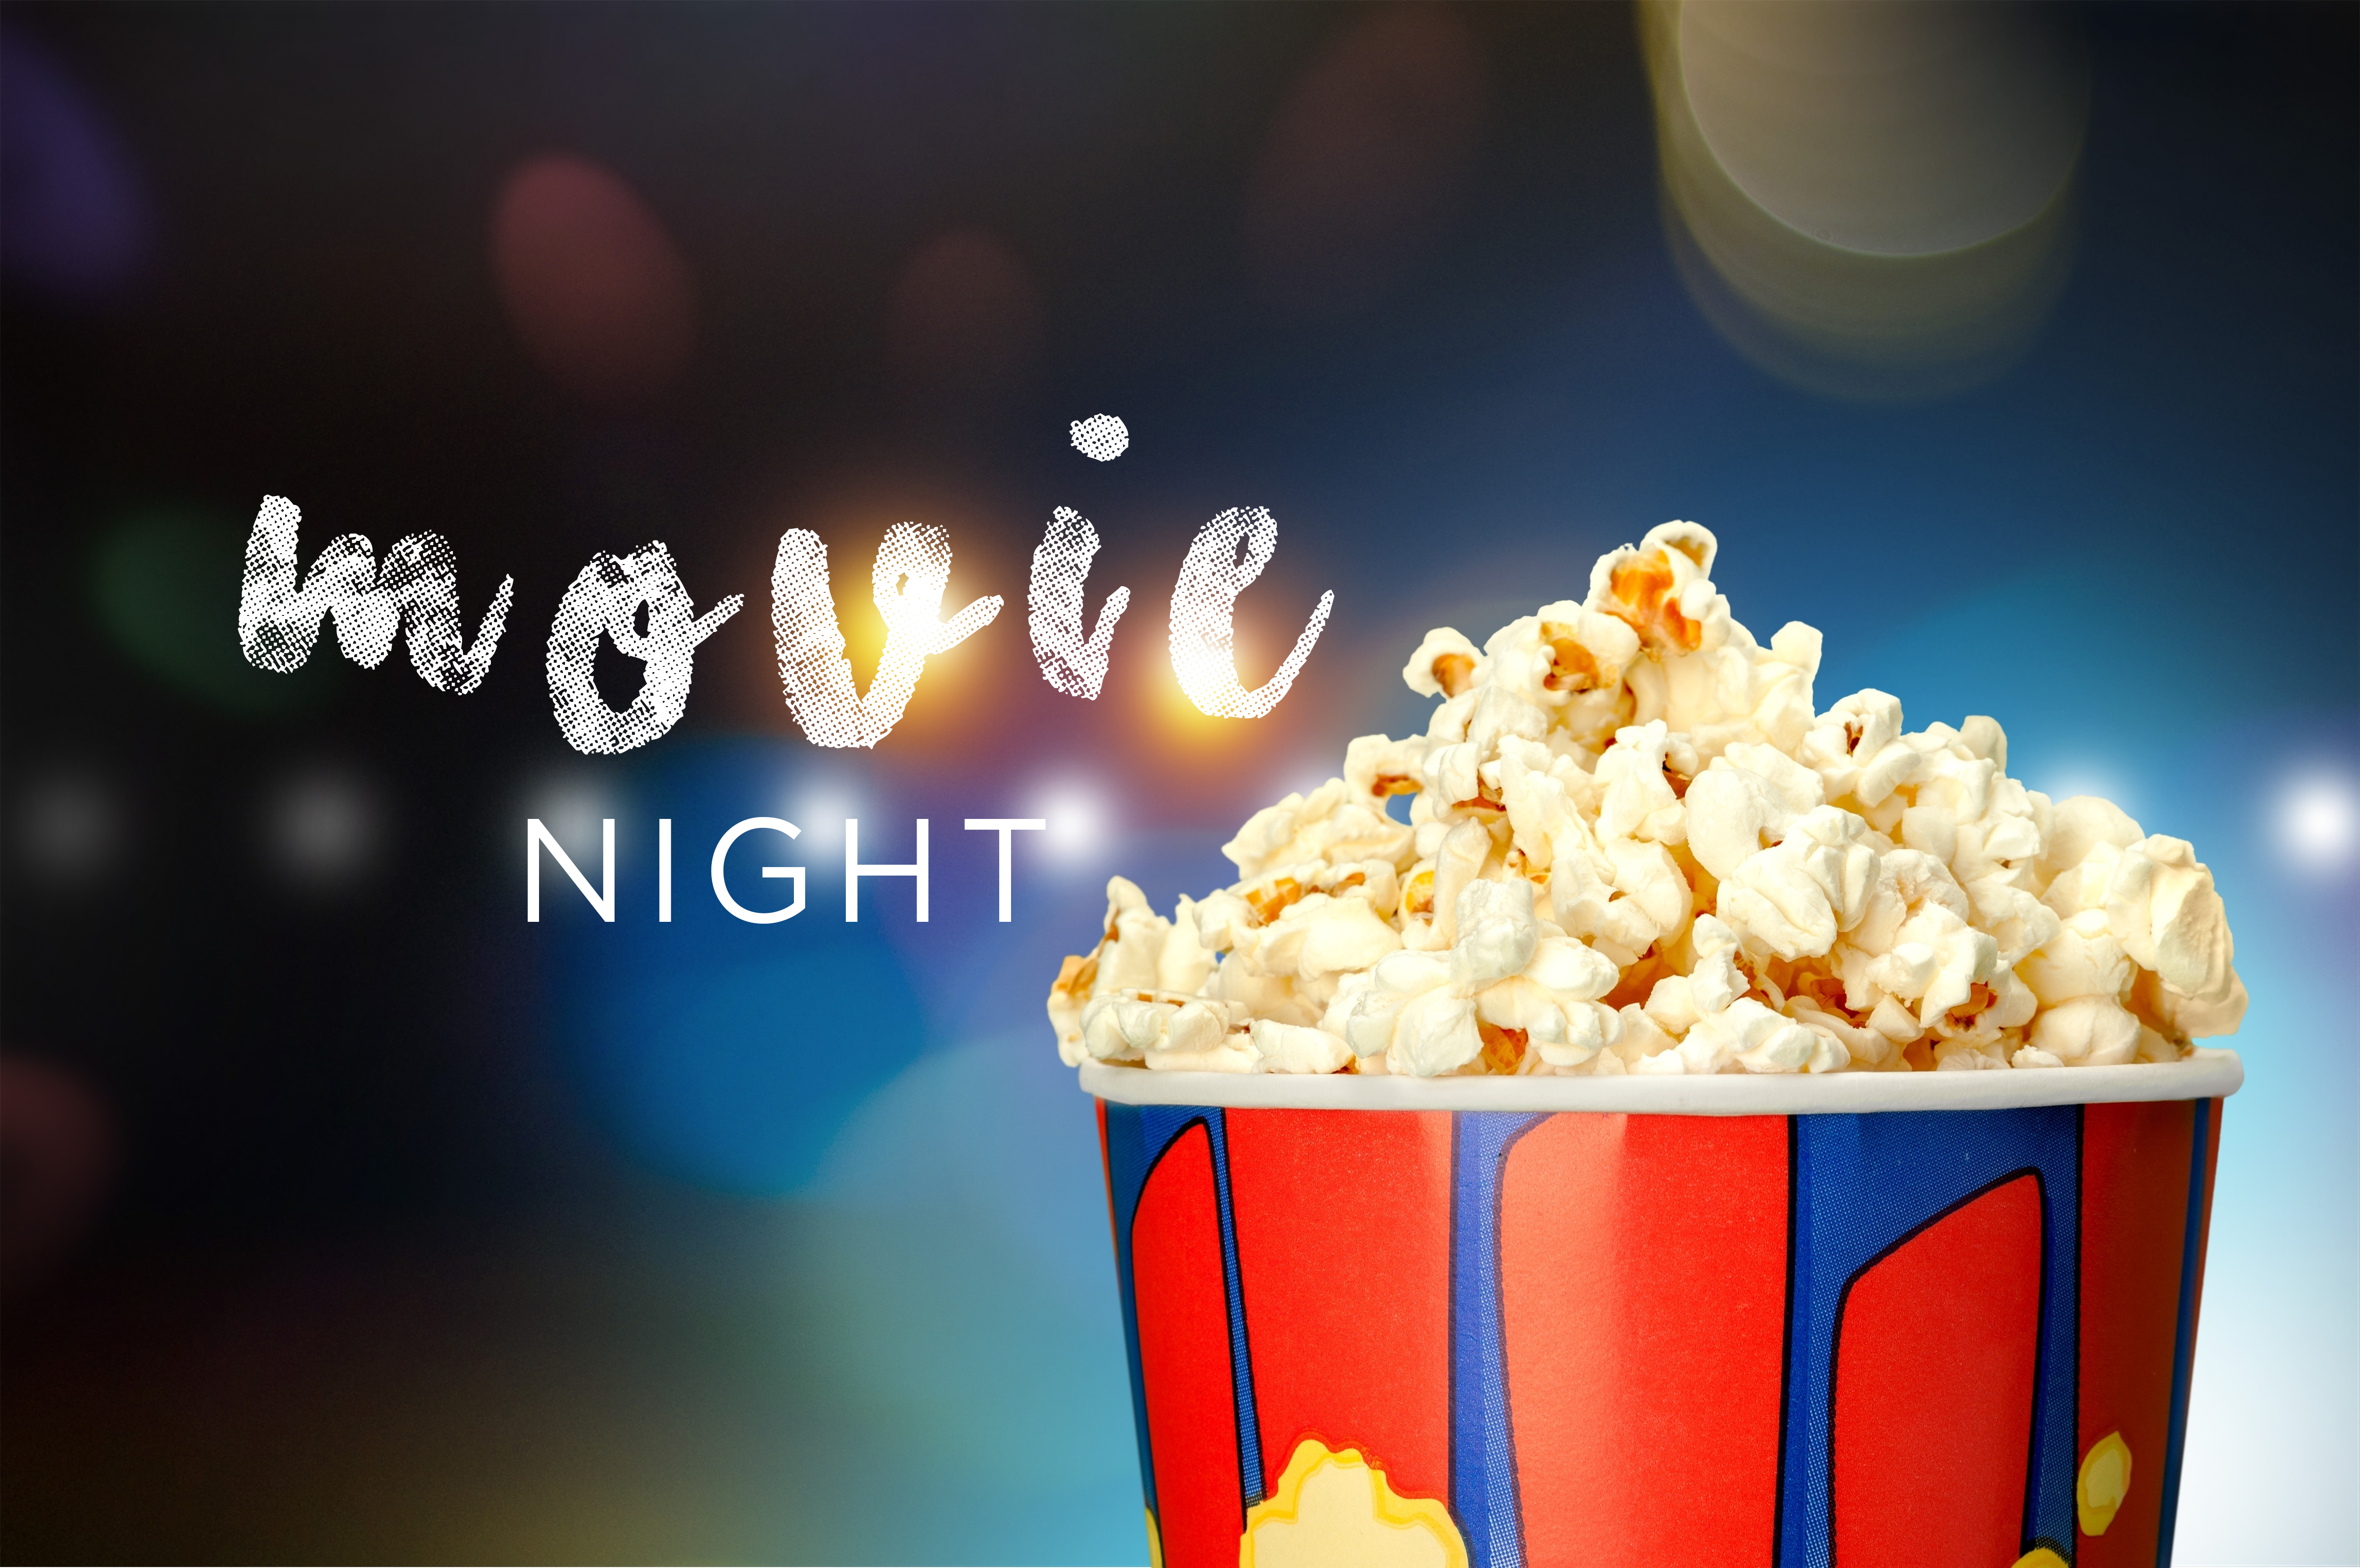 Cinema background with movie objects Vector Image ...  |Movie Night Page Background